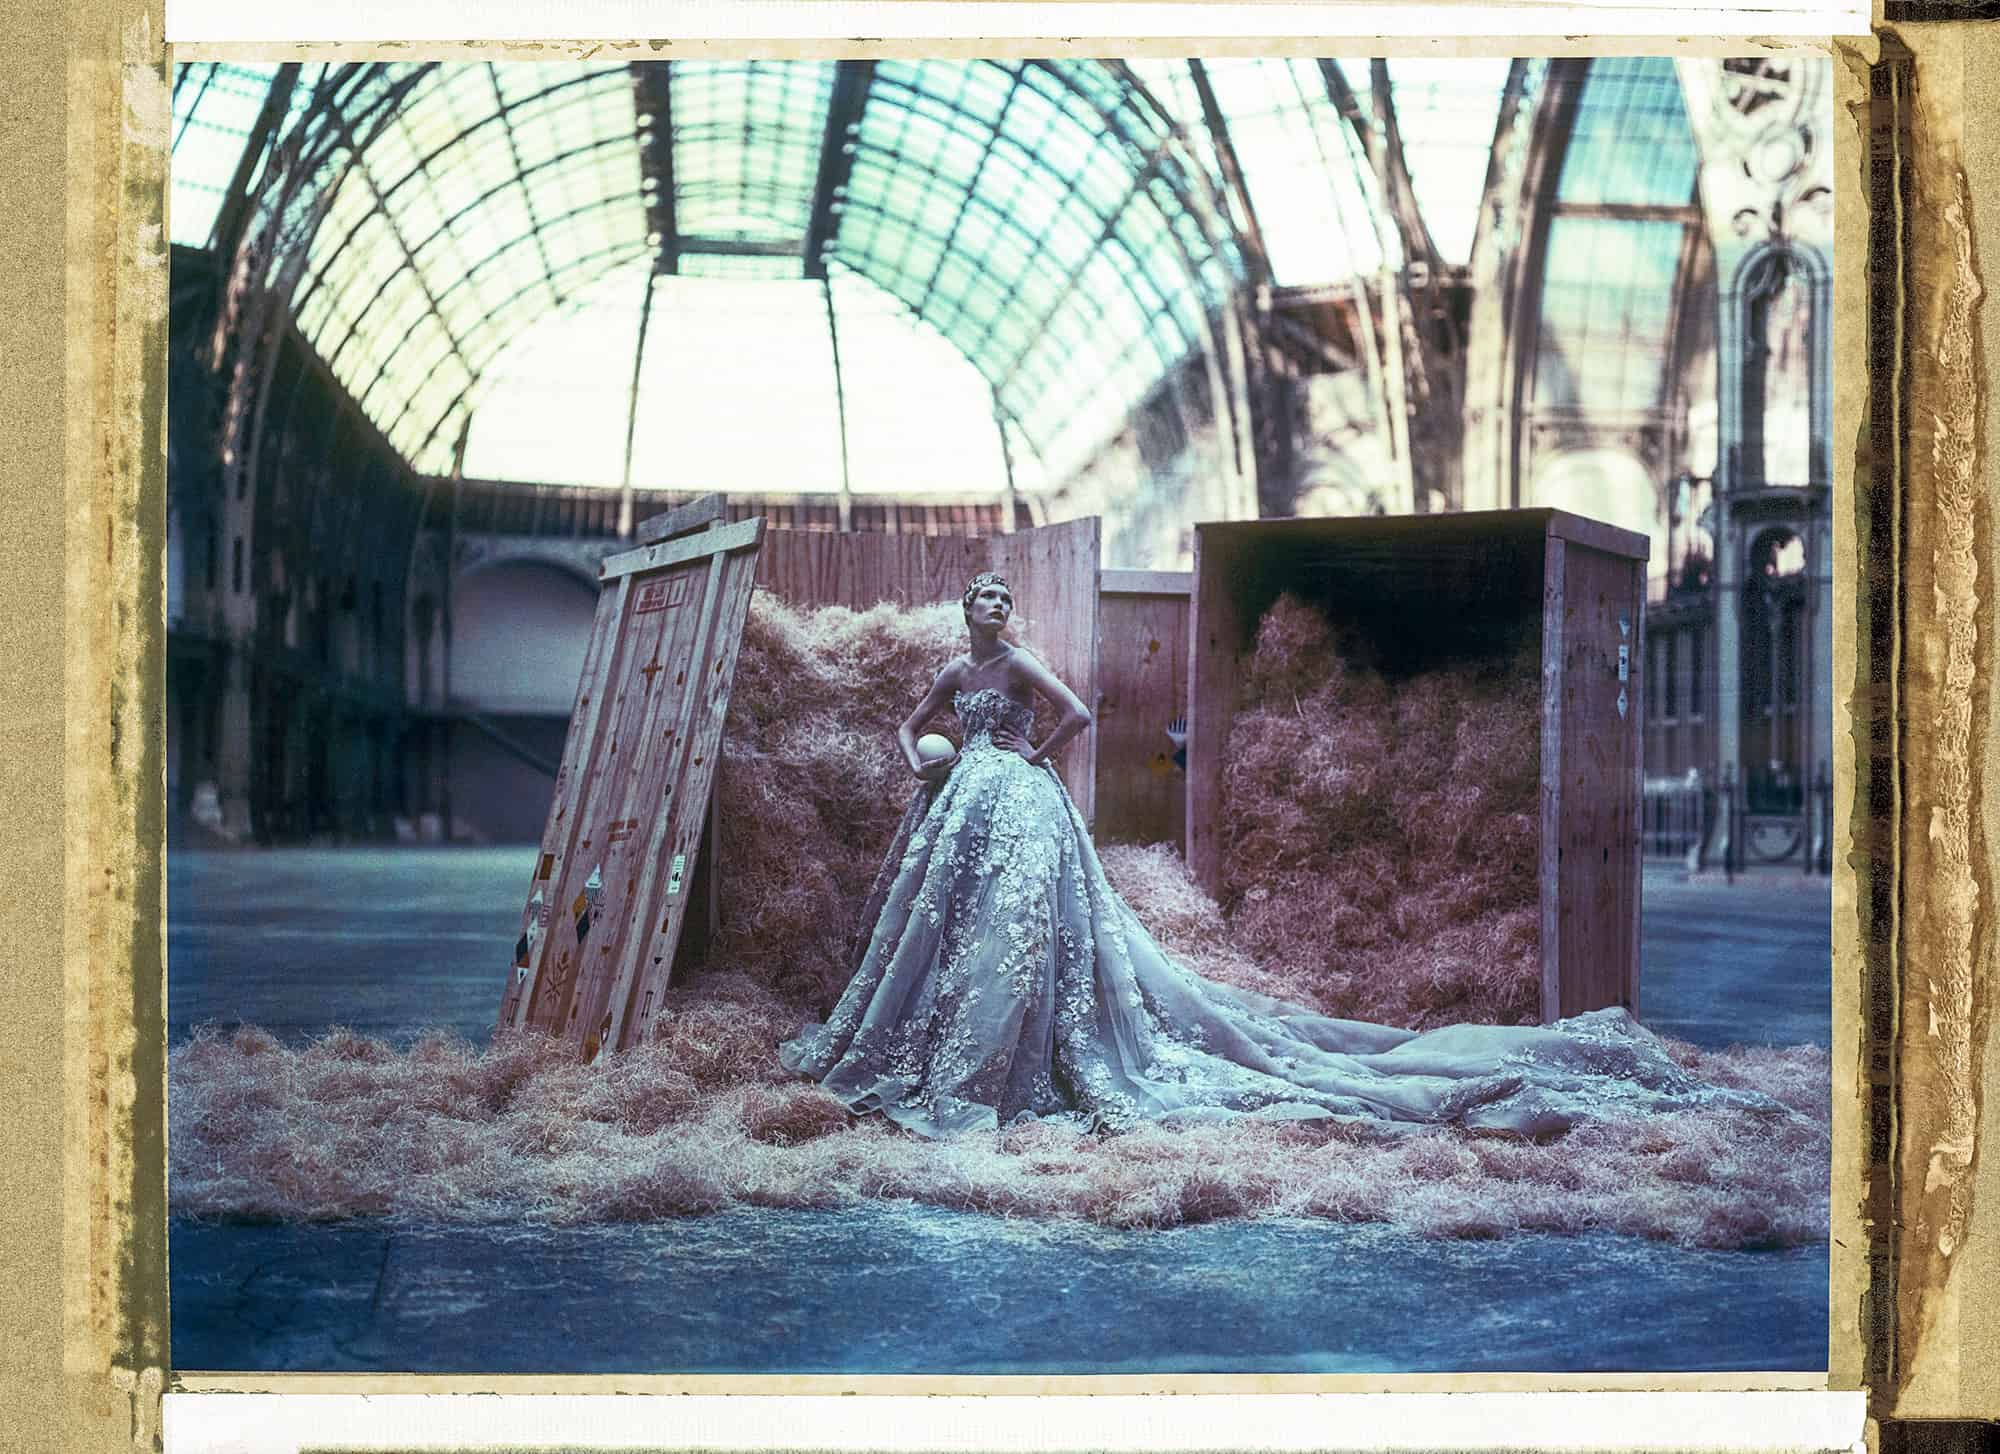 Fine art color photography of a fashion model wearing haute couture by Elie Saab with ostrich egg, at the Grand Palais, Paris.